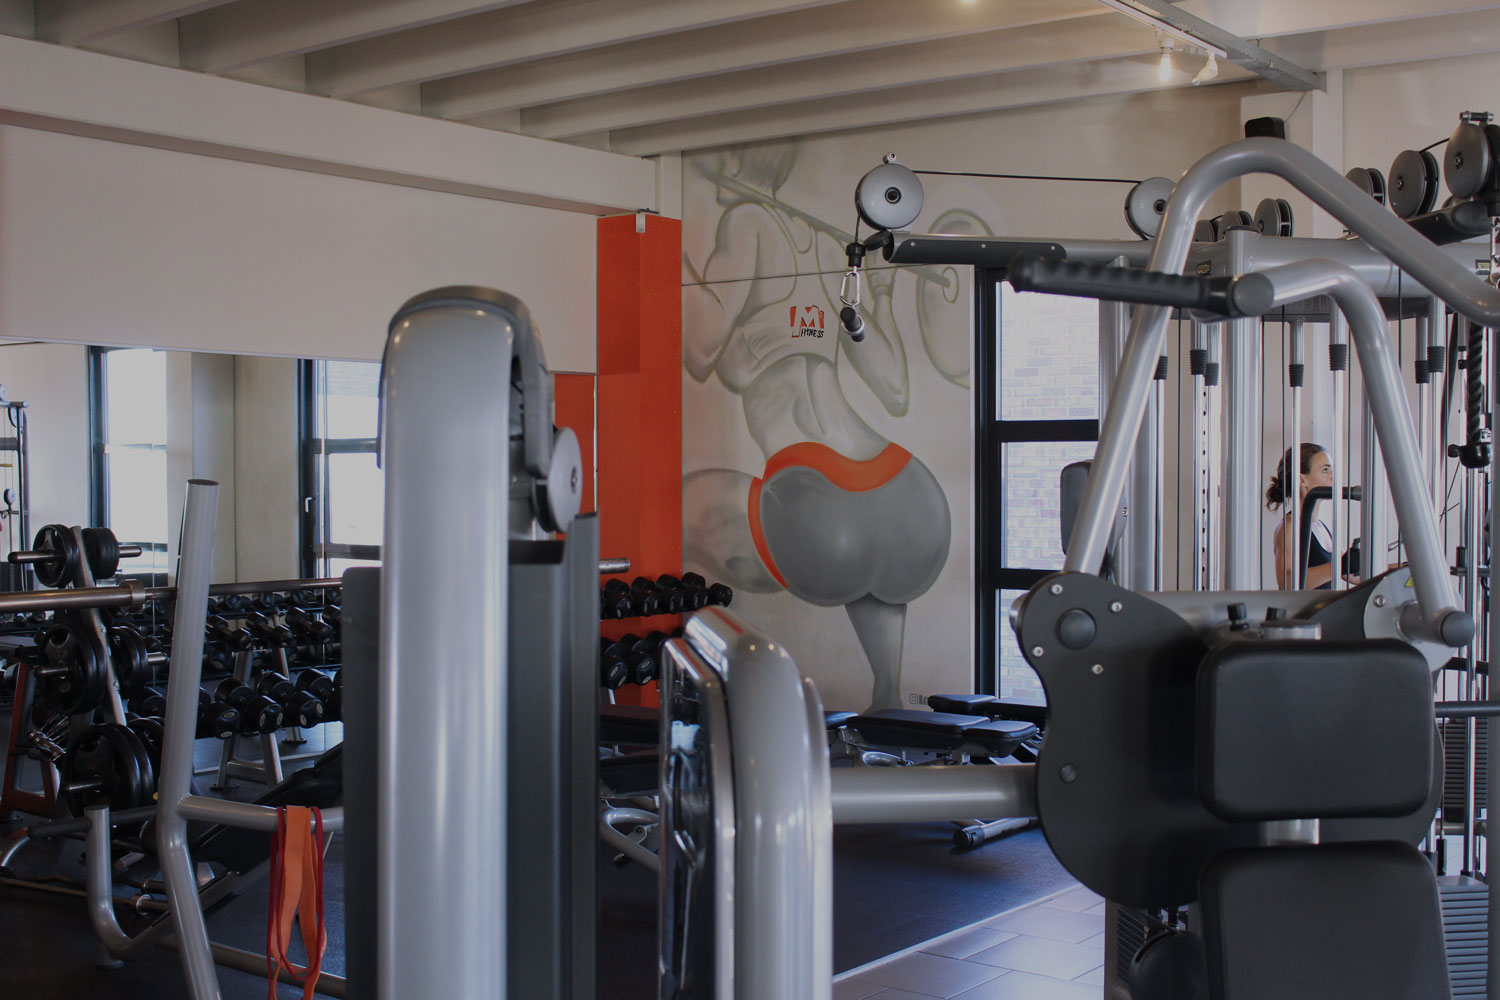 M fitness abcoude mural